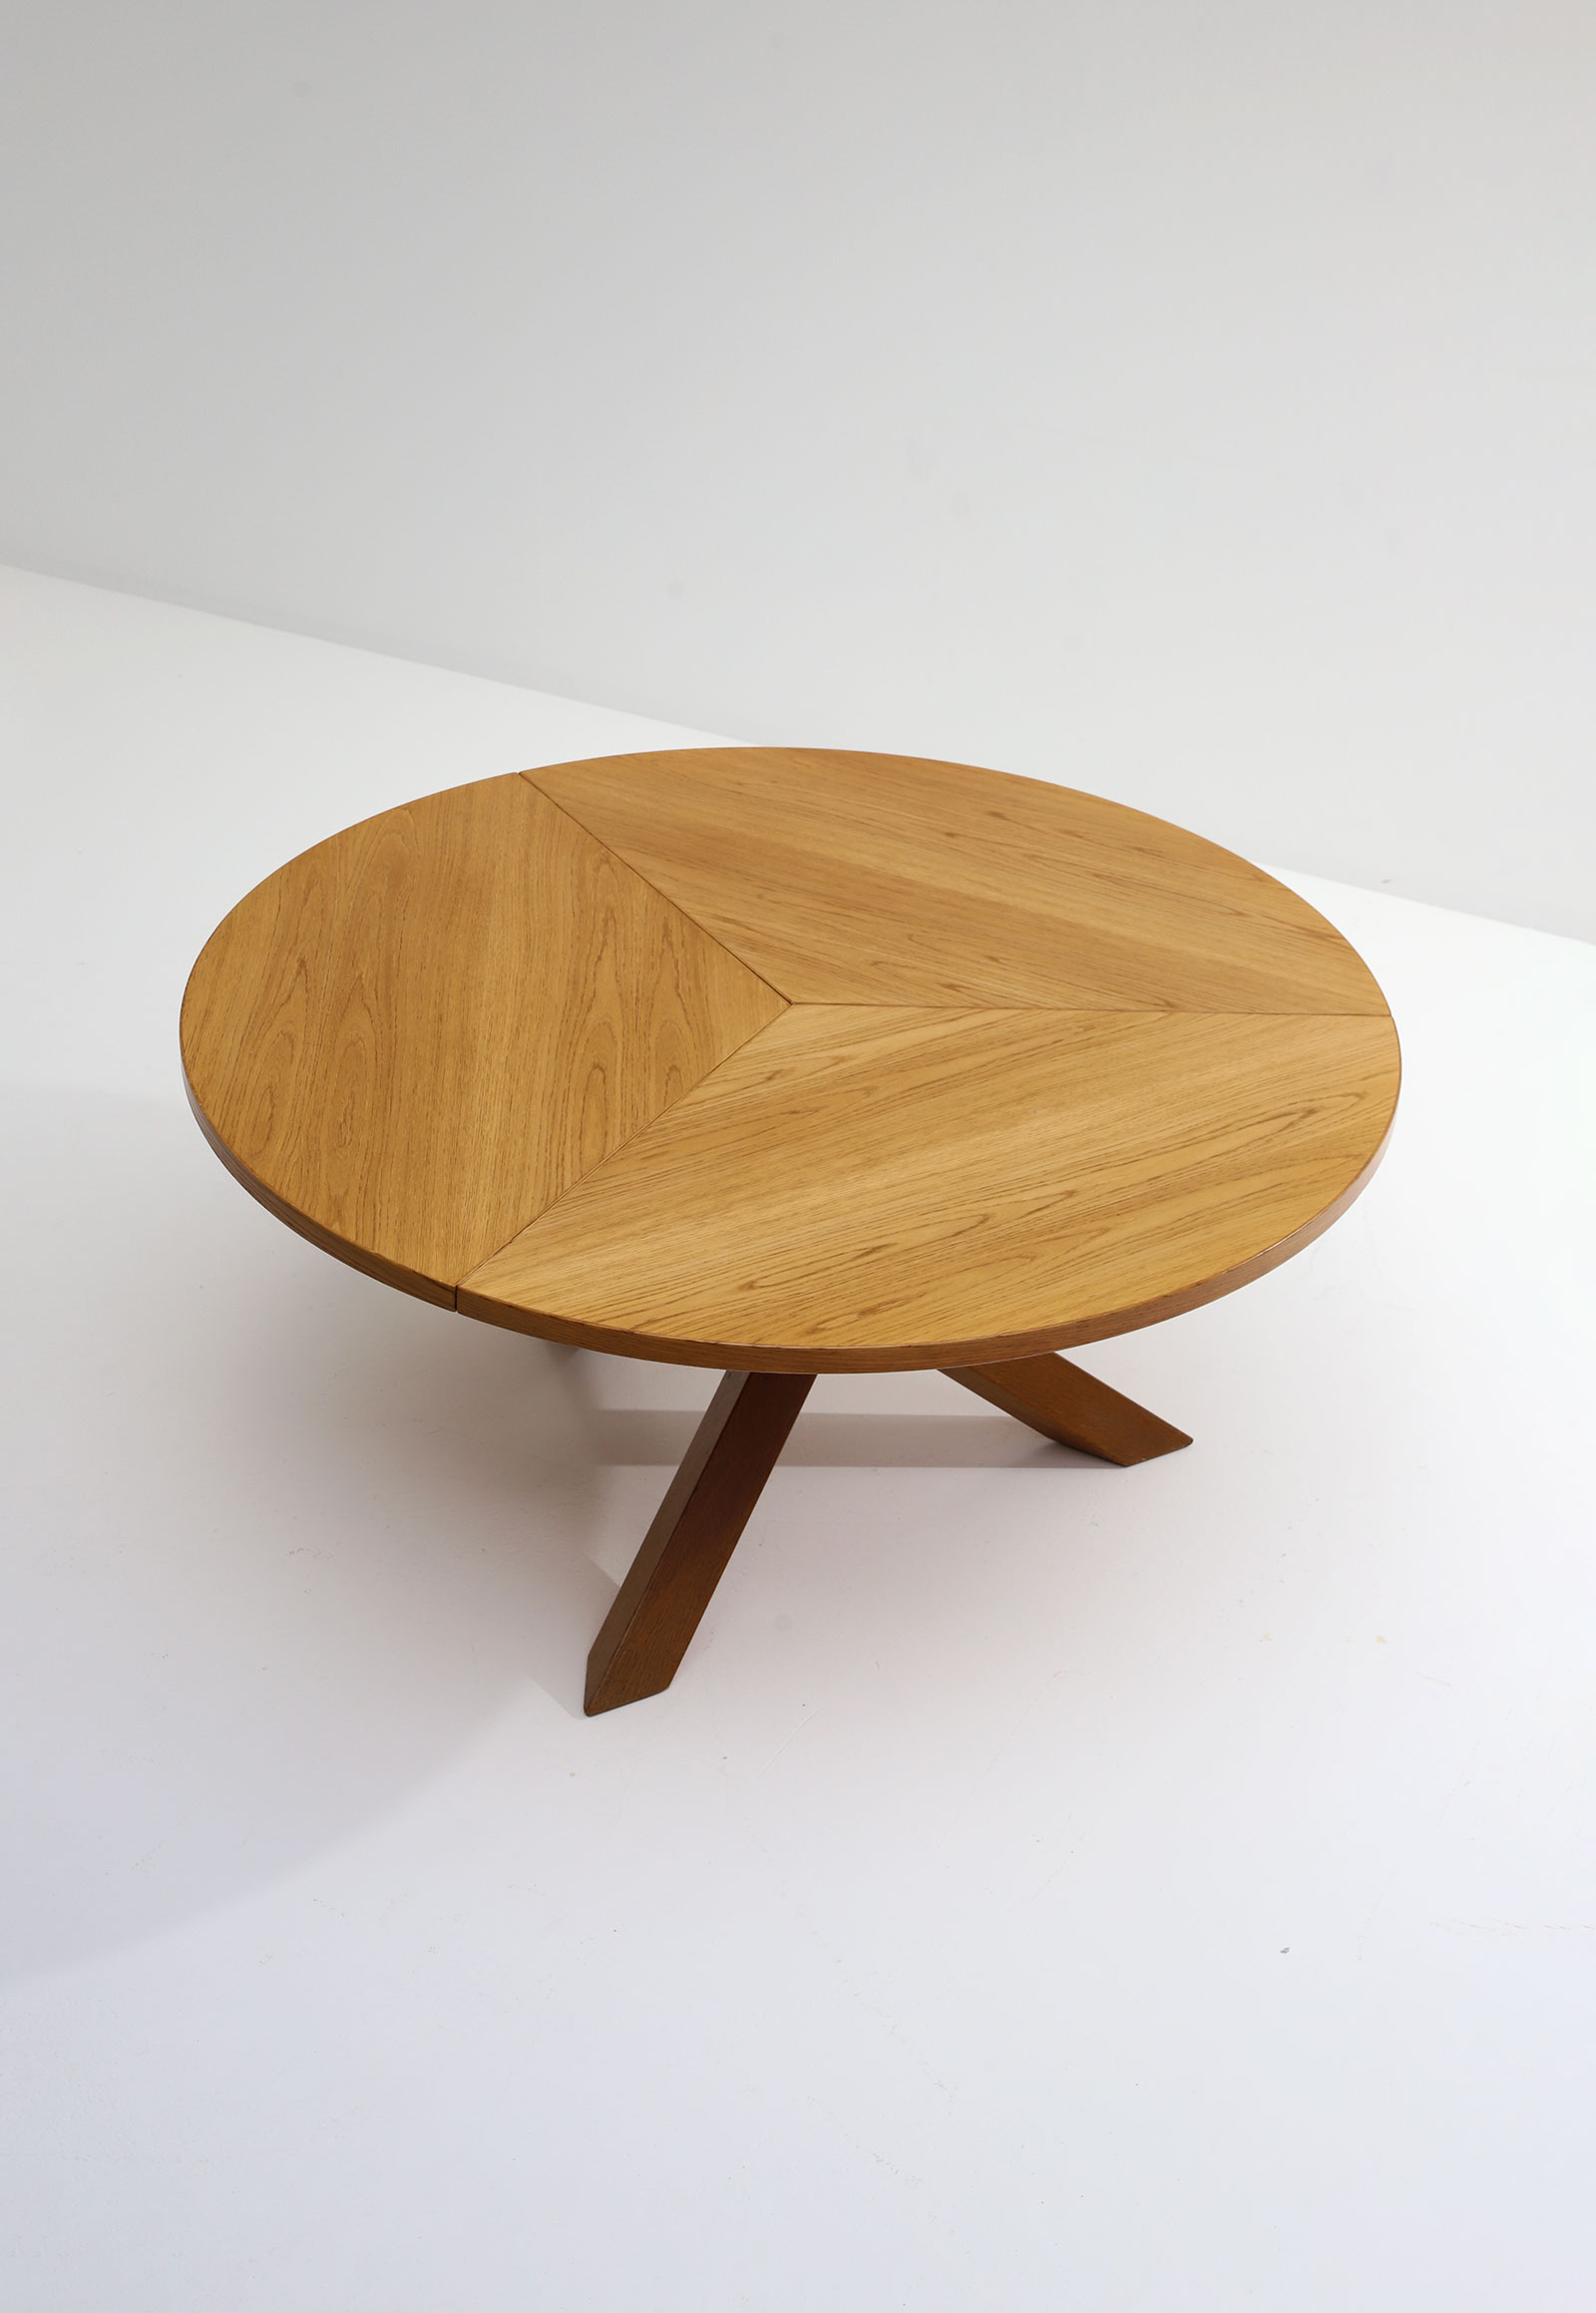 Gerard Geytenbeek Dining Table for AZS The Netherlandsimage 5